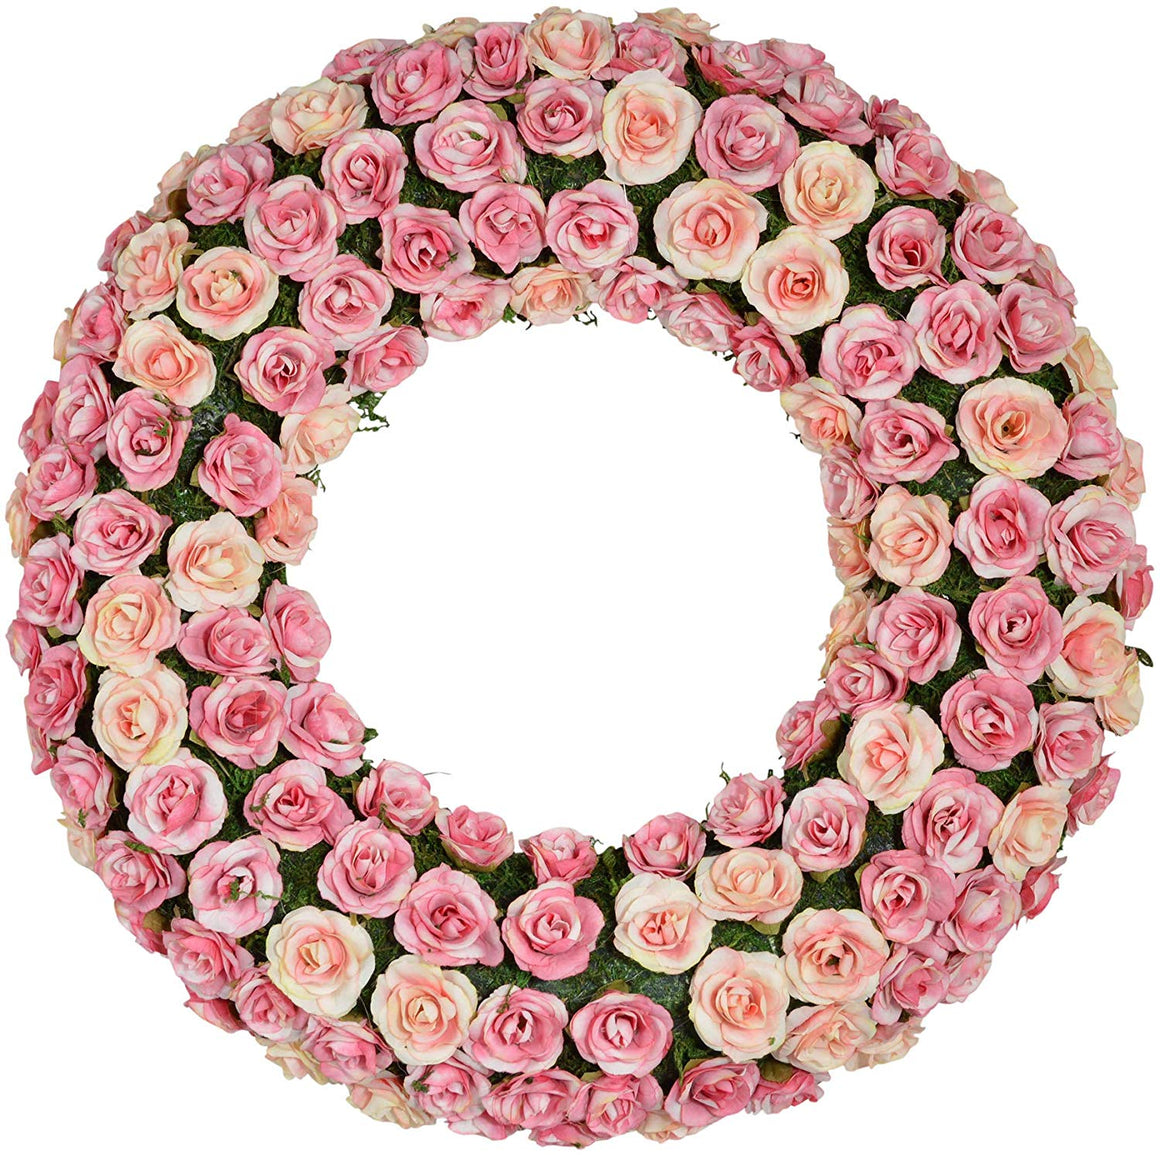 TII 16 Inch Rosette Wreath in Pink and Cream, Rose Blossom and Moss Spring and Summer Front Door Wreath